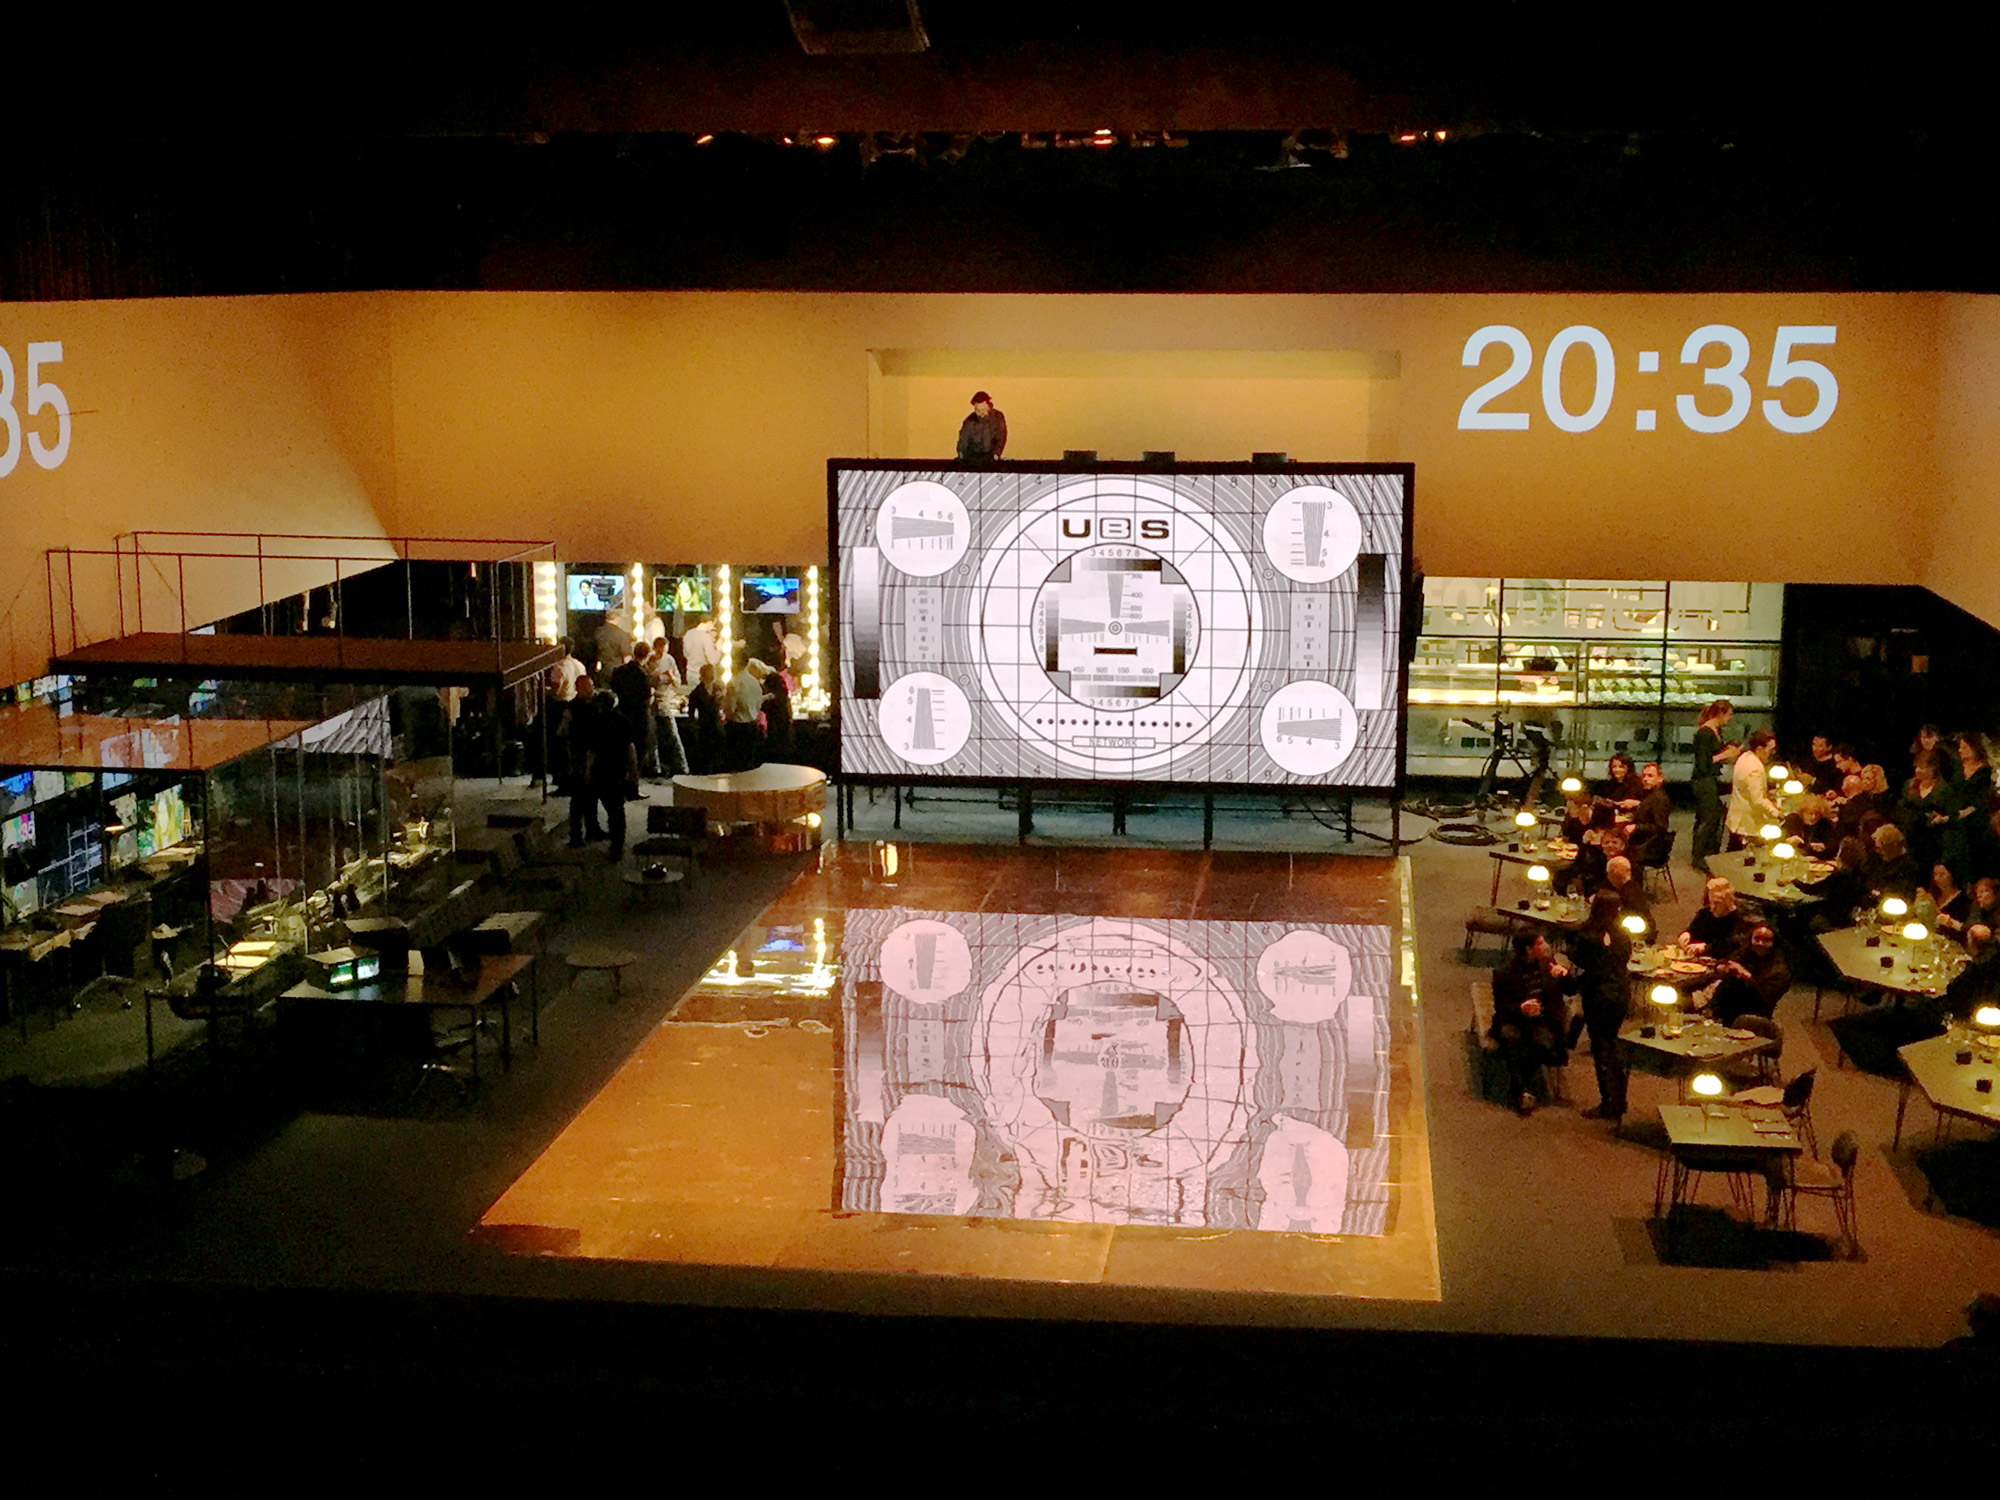 A large, open stage. To the right are several tables with people aorund them. To the rear a large screen shows a test-card, next to it a projected digital clock reads 20:35.